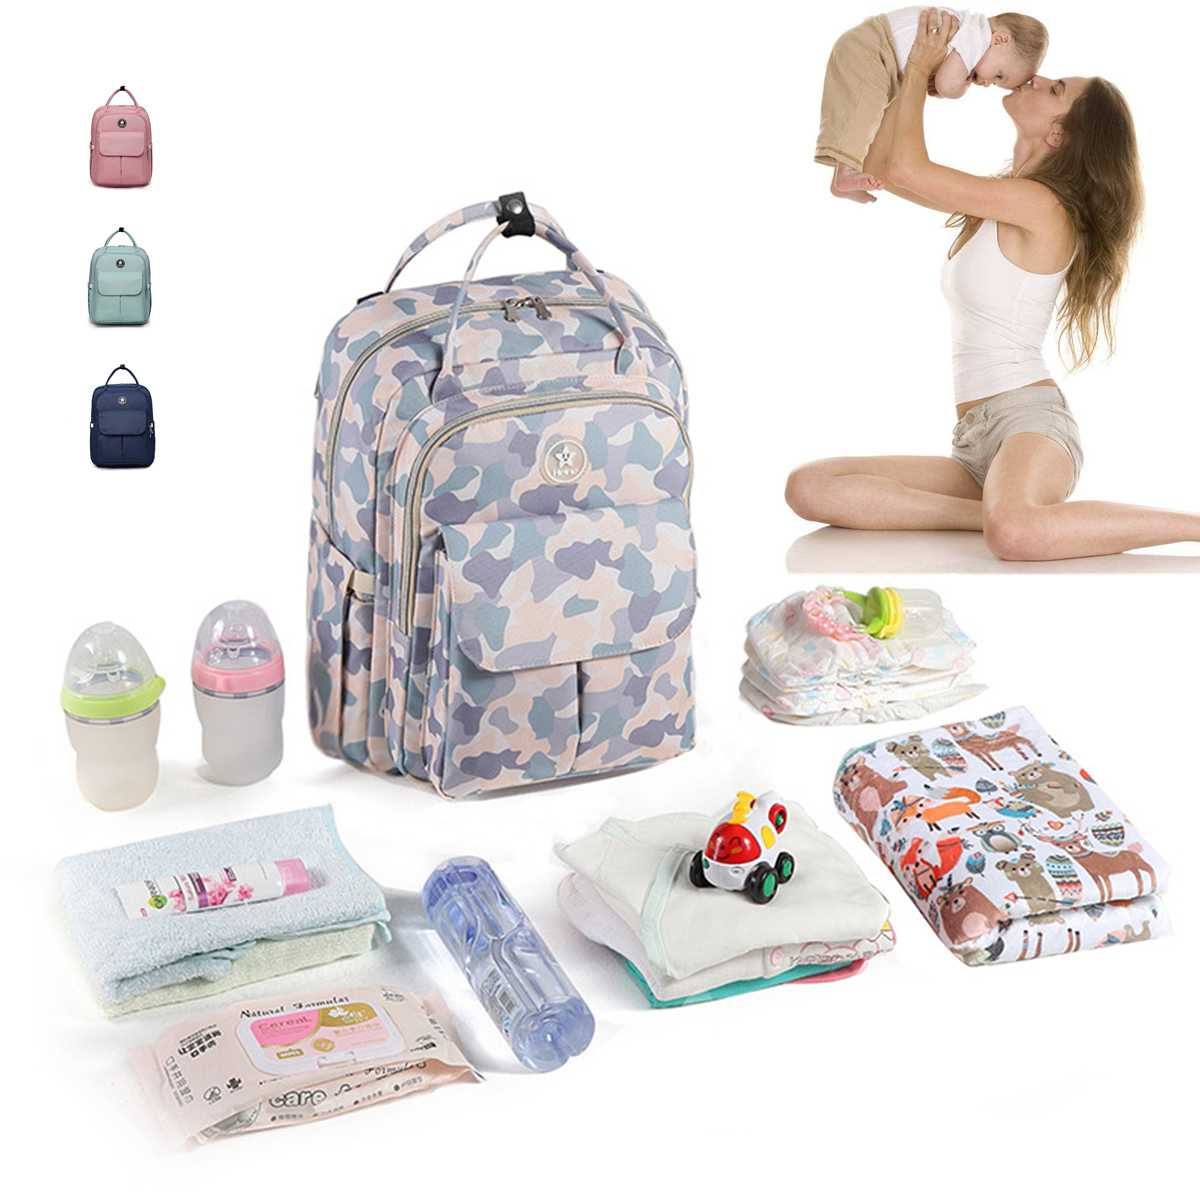 Waterproof Mummy Nappy Bags Fashion Mother Multi-function Backpacks Maternity Diaper Bags Large Capacity Baby Care Nursing BagWaterproof Mummy Nappy Bags Fashion Mother Multi-function Backpacks Maternity Diaper Bags Large Capacity Baby Care Nursing Bag